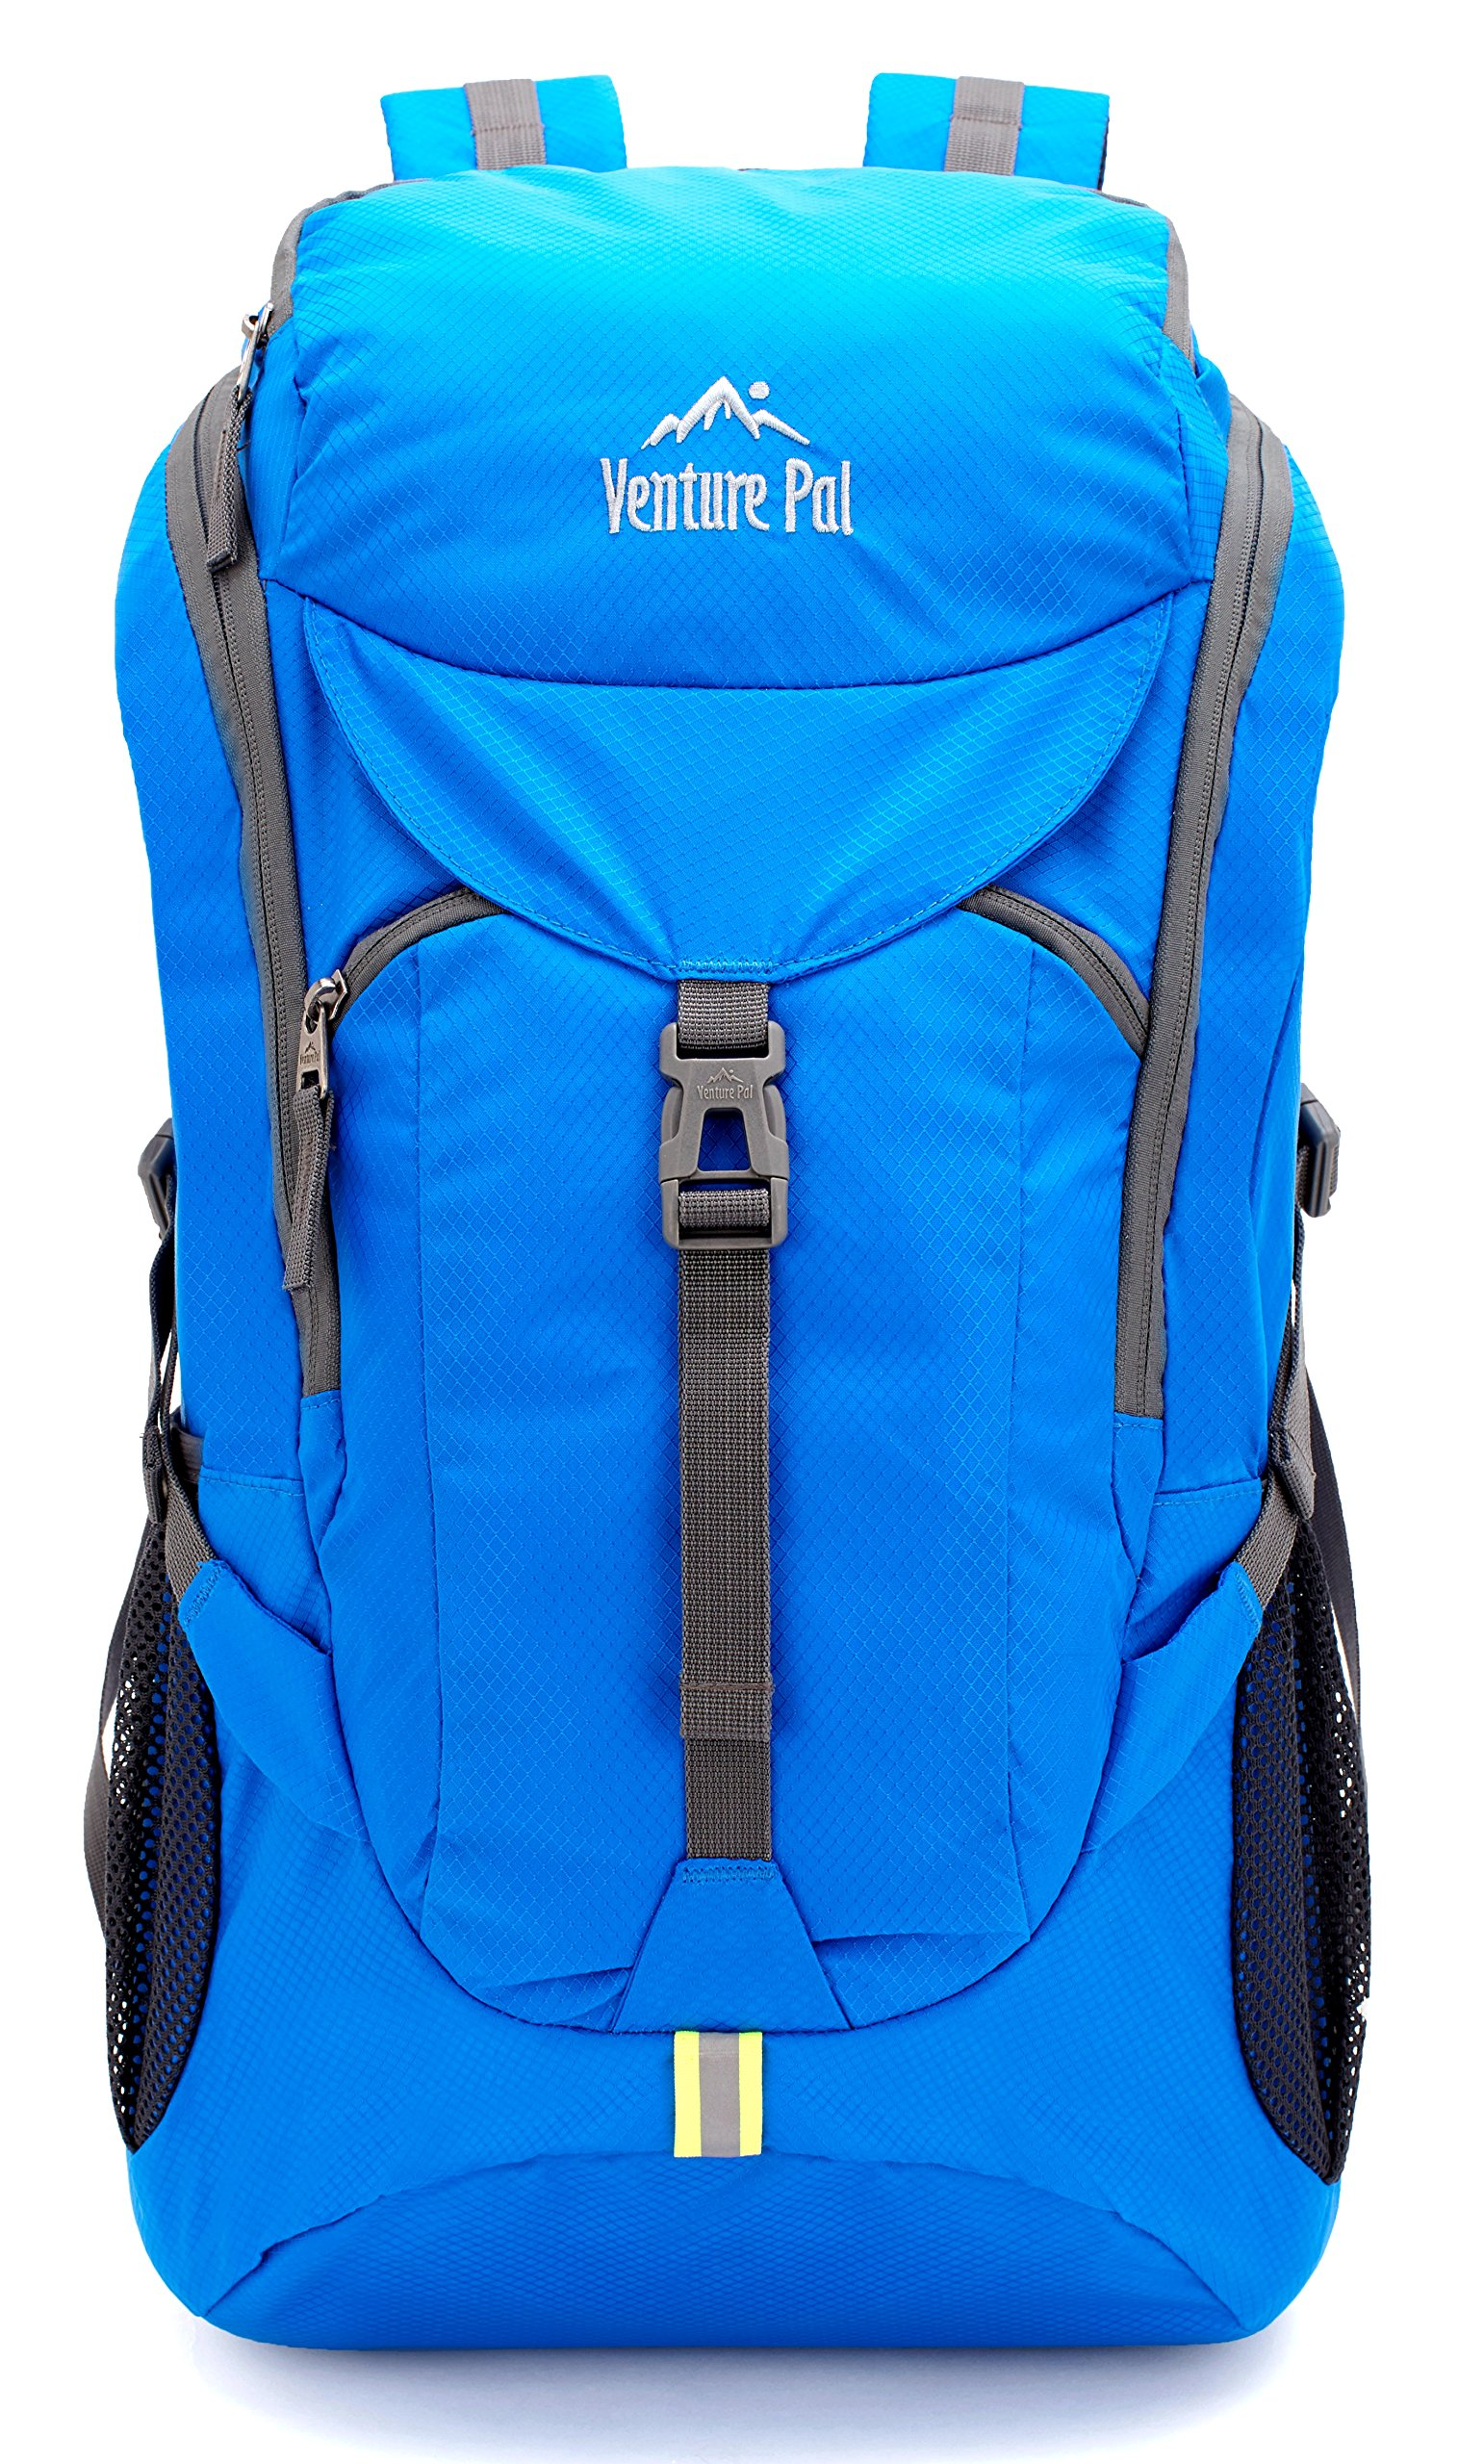 Venture Pal Hiking Backpack - Packable Durable Lightweight Travel Backpack Daypack for Women Men(blue)